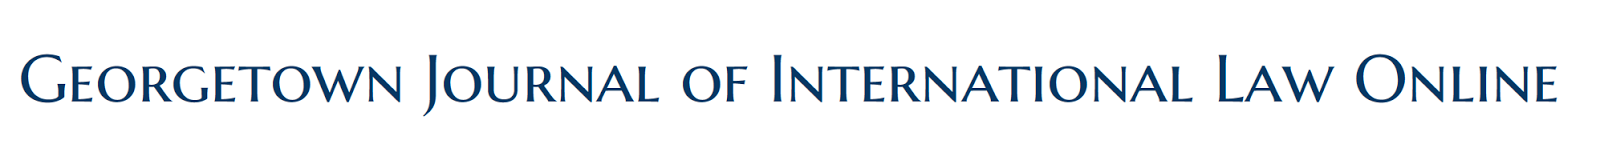 Georgetown Journal of International Law Online